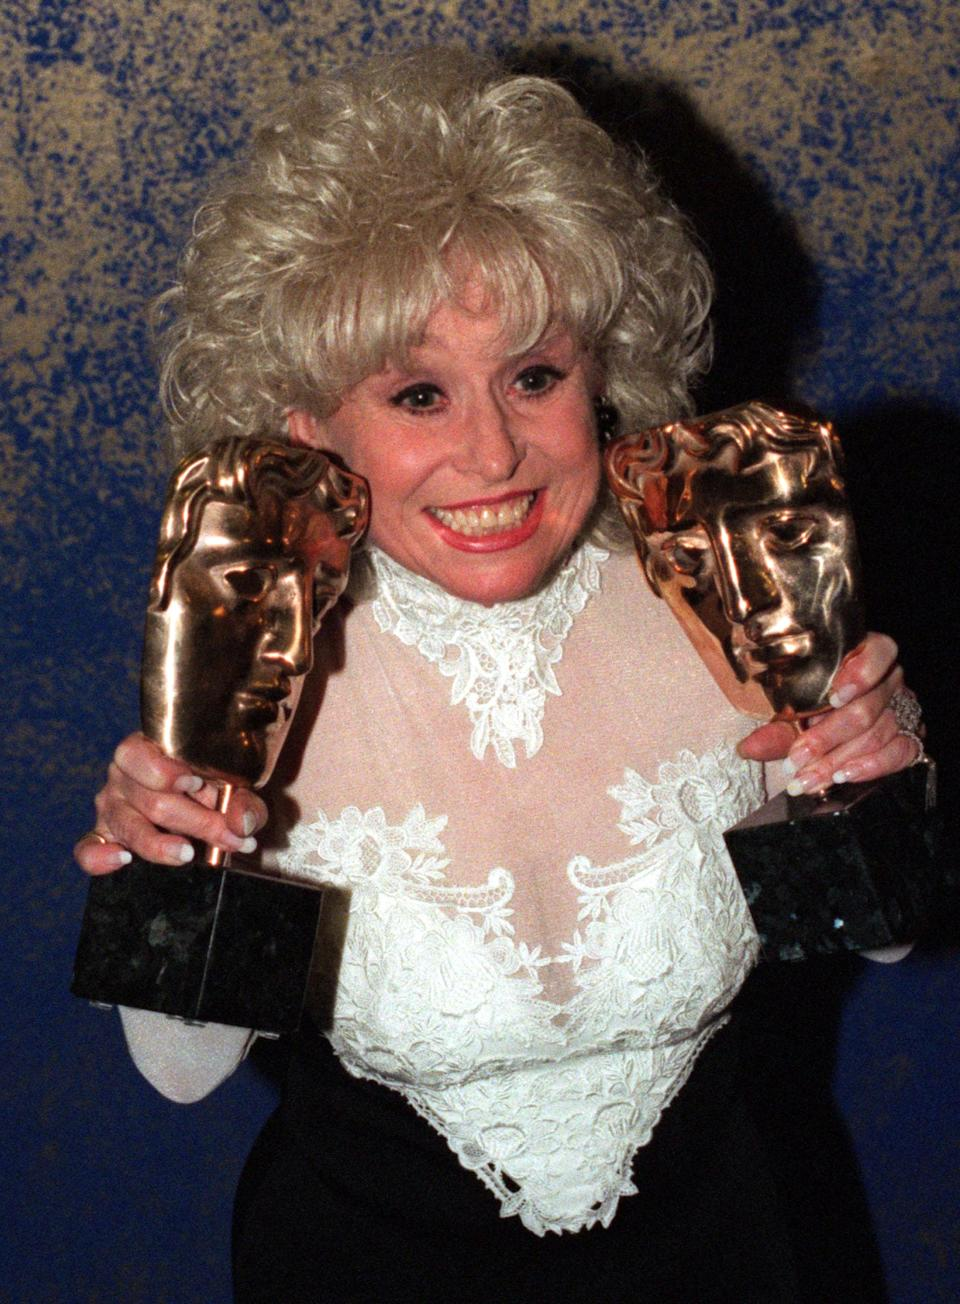 Eastenders actress Barbara Windsor holds two BAFTA awards during the ceremony held at London's Royal Albert Hall April 29. Windsor, who presented one award, received the other for Eastenders as the hit soap won the Best Drama Series Award.